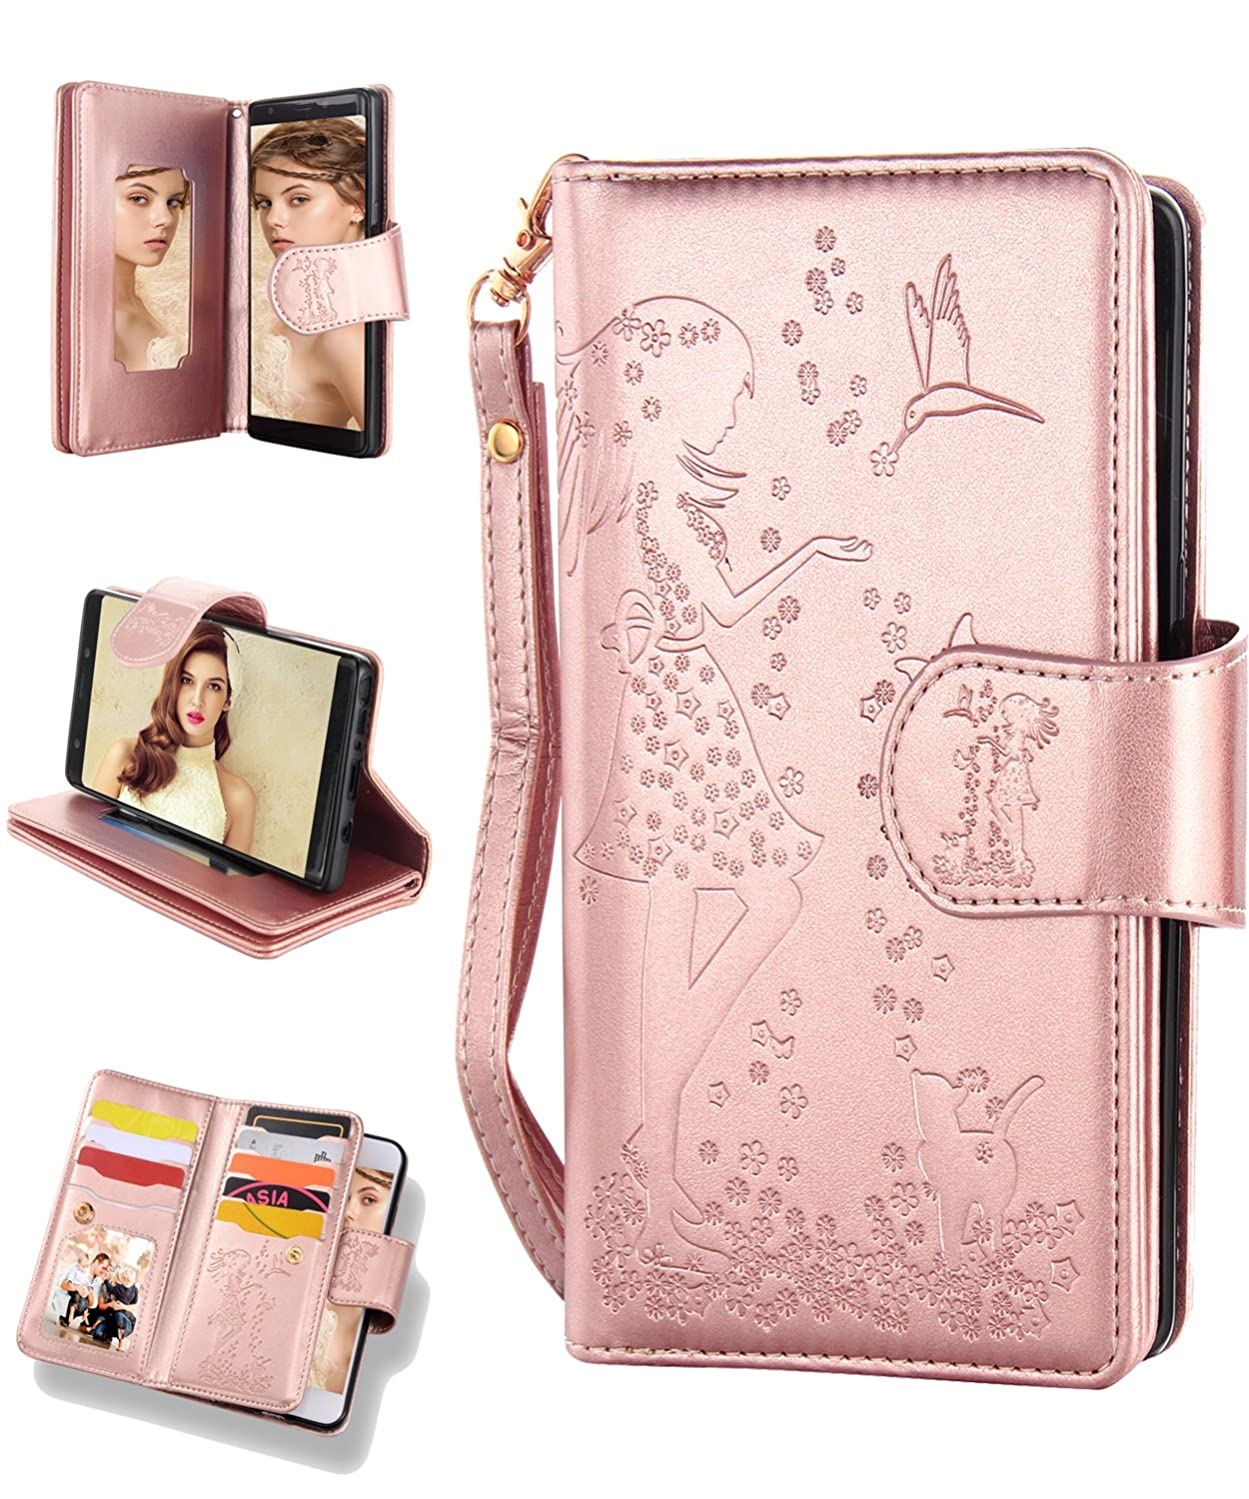 Samsung S9 Case,Galaxy S9 Wallet Case,FLYEE 9 Card Slot PU Leather Magnetic Protective Cover with Mirror and Wrist Strap for Samsung Galaxy S9 5.8 inch Rose Gold